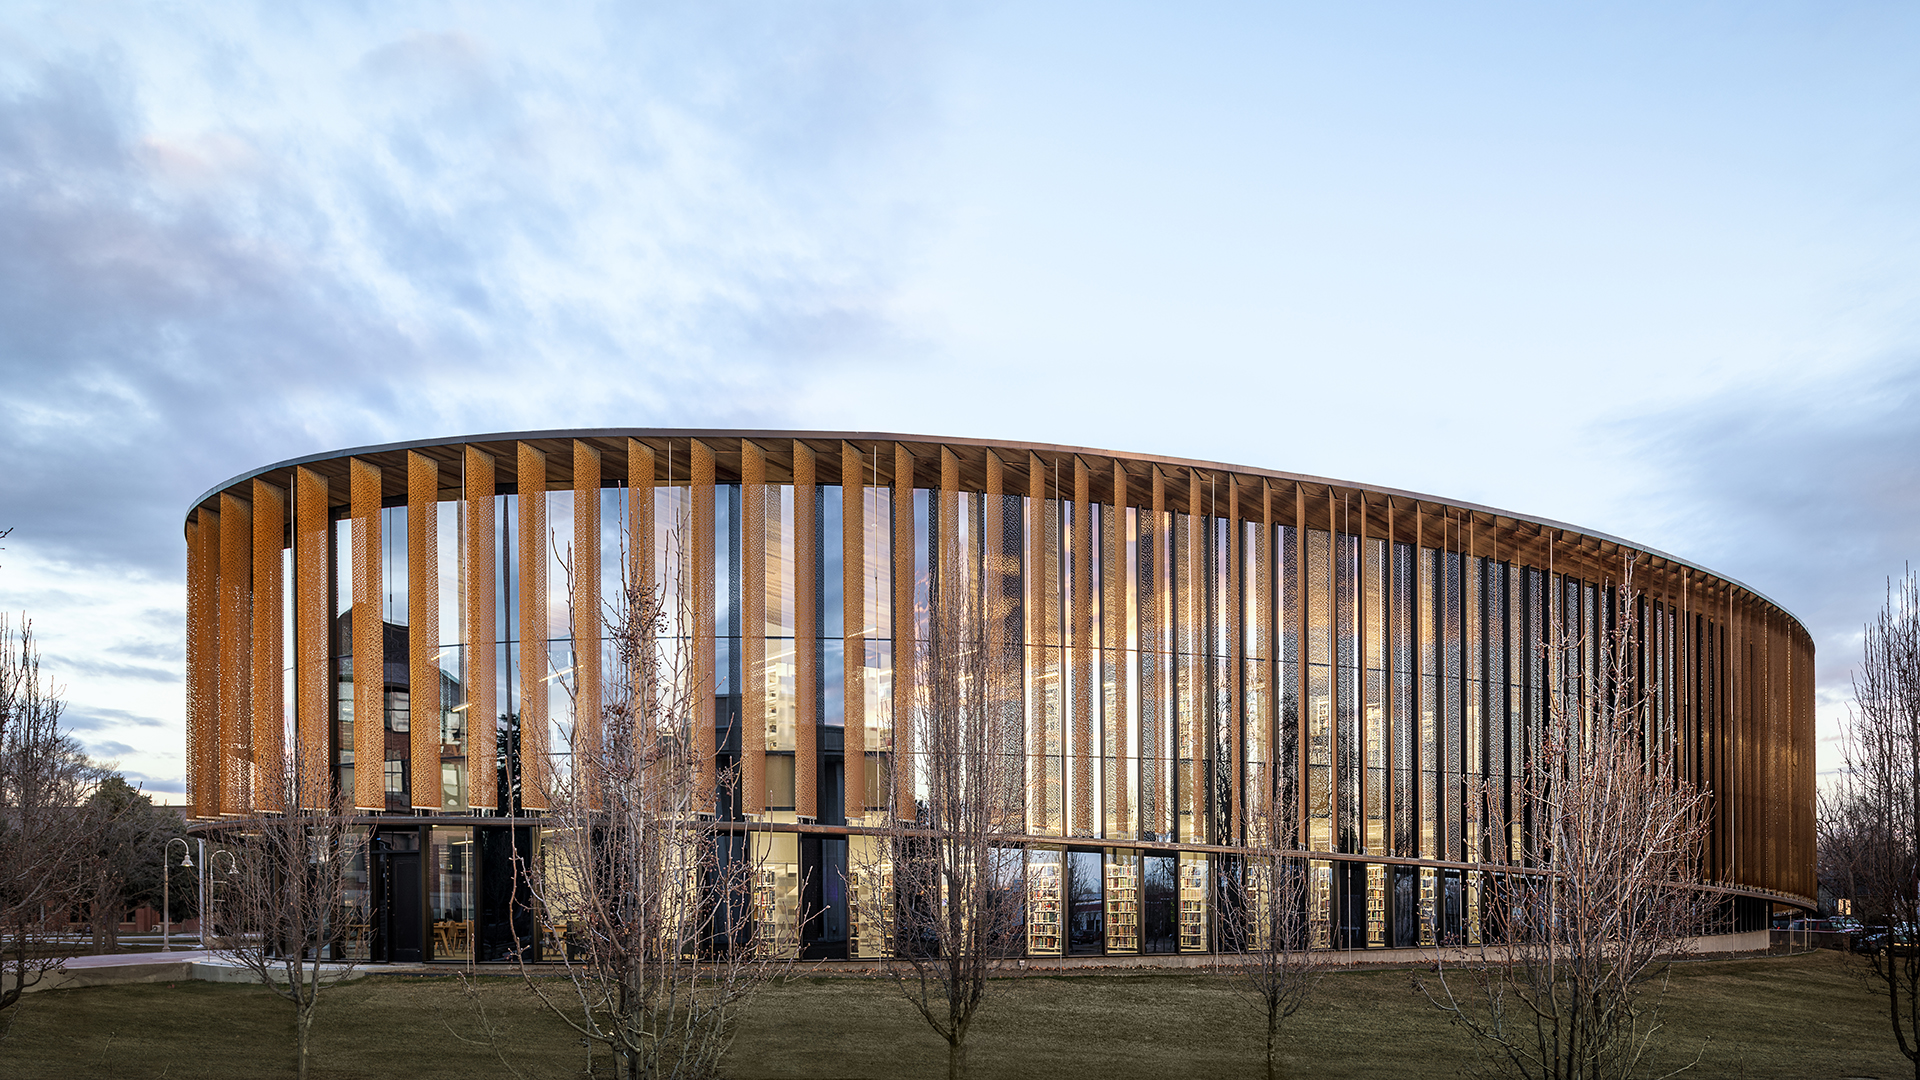 Perforated screen facades that are sun smart